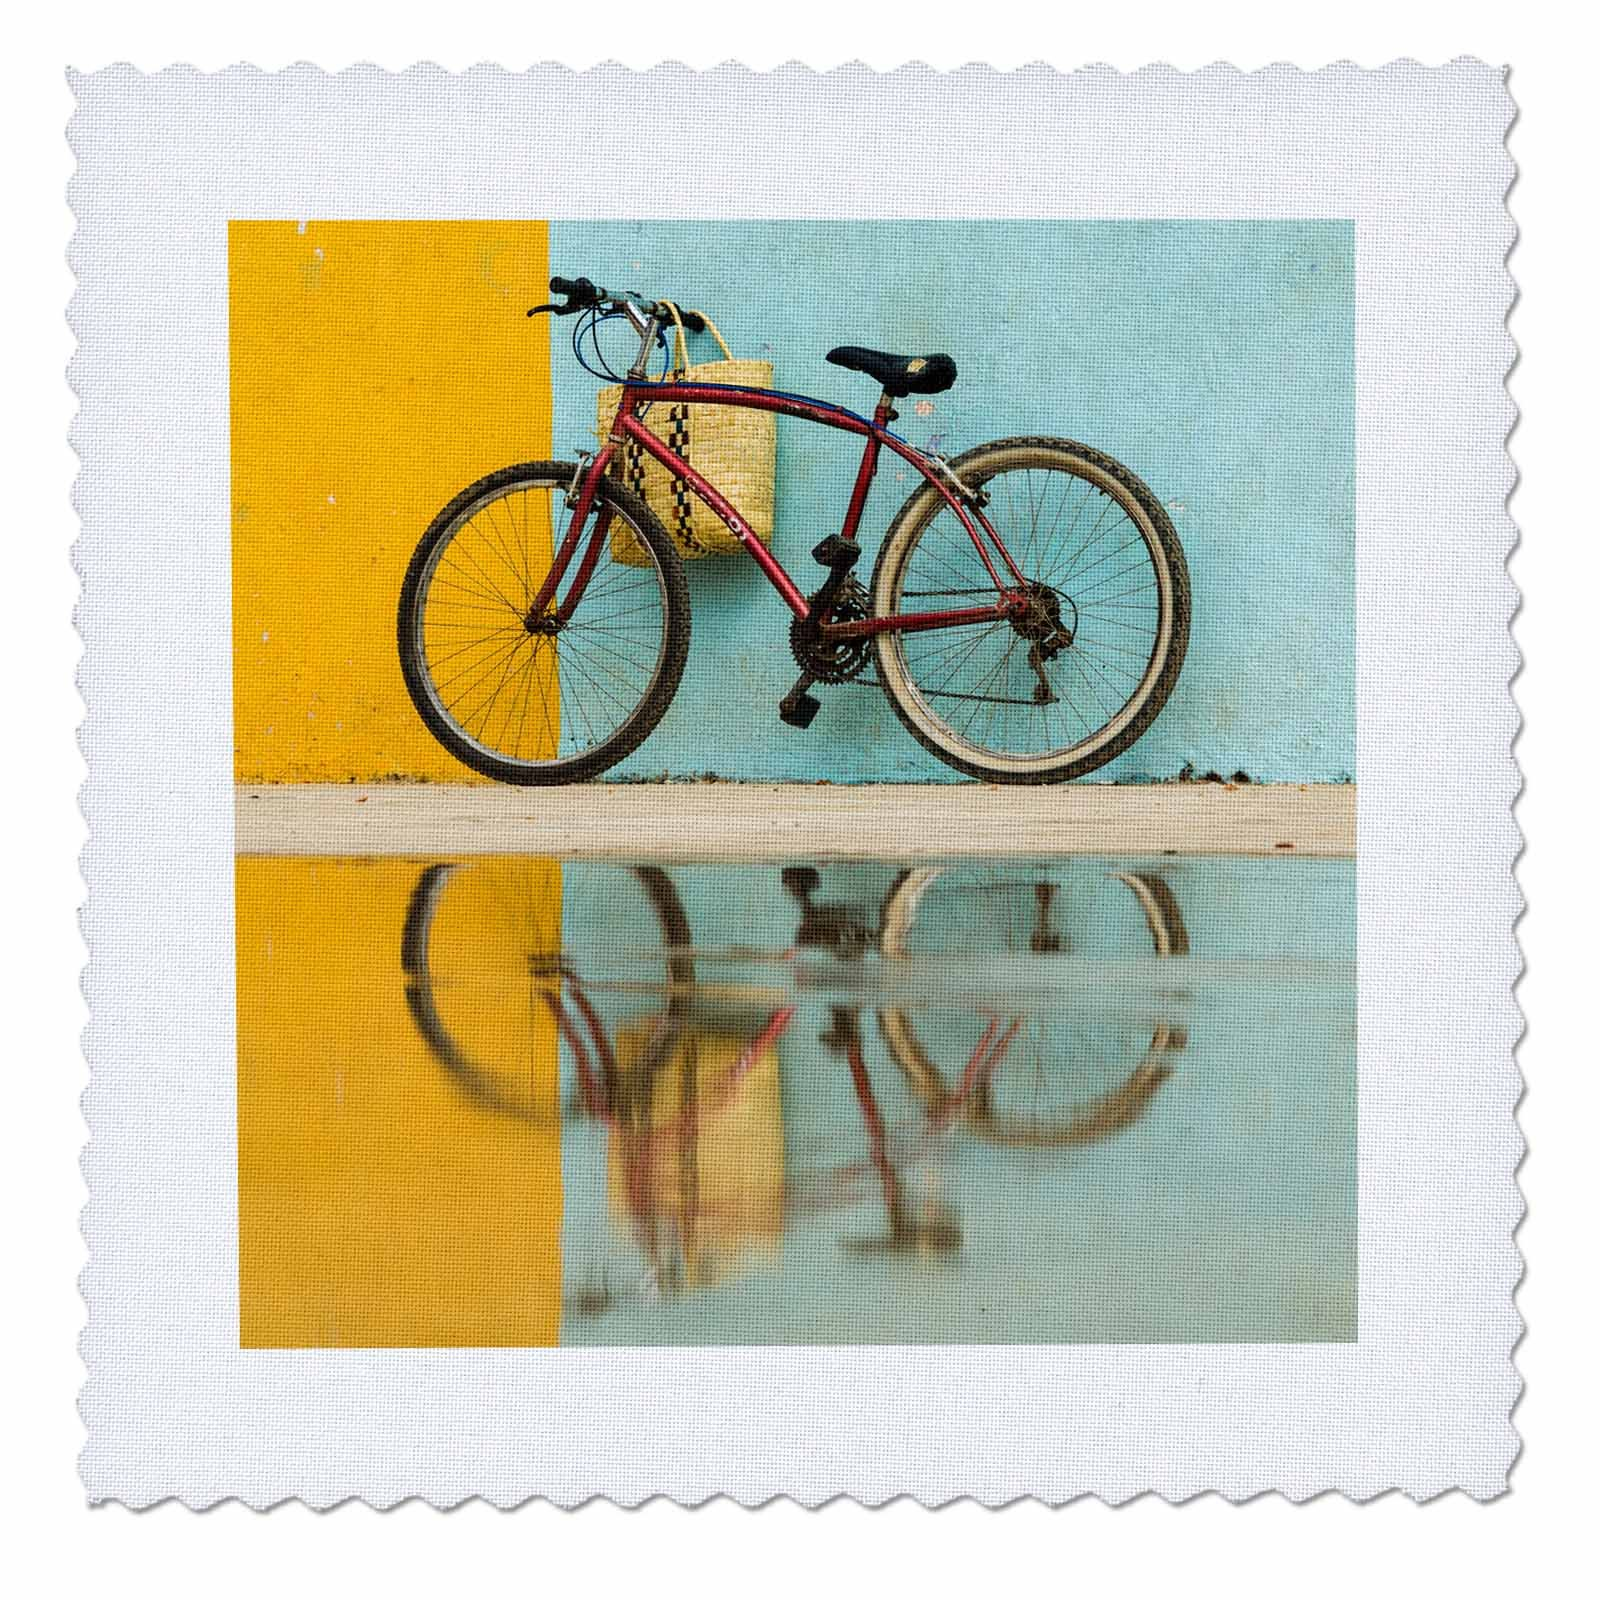 3dRose Danita Delimont - Bicycle - Cuba, Trinidad. Bicycle and reflection against yellow and blue walls. - 16x16 inch quilt square (qs_277162_6)